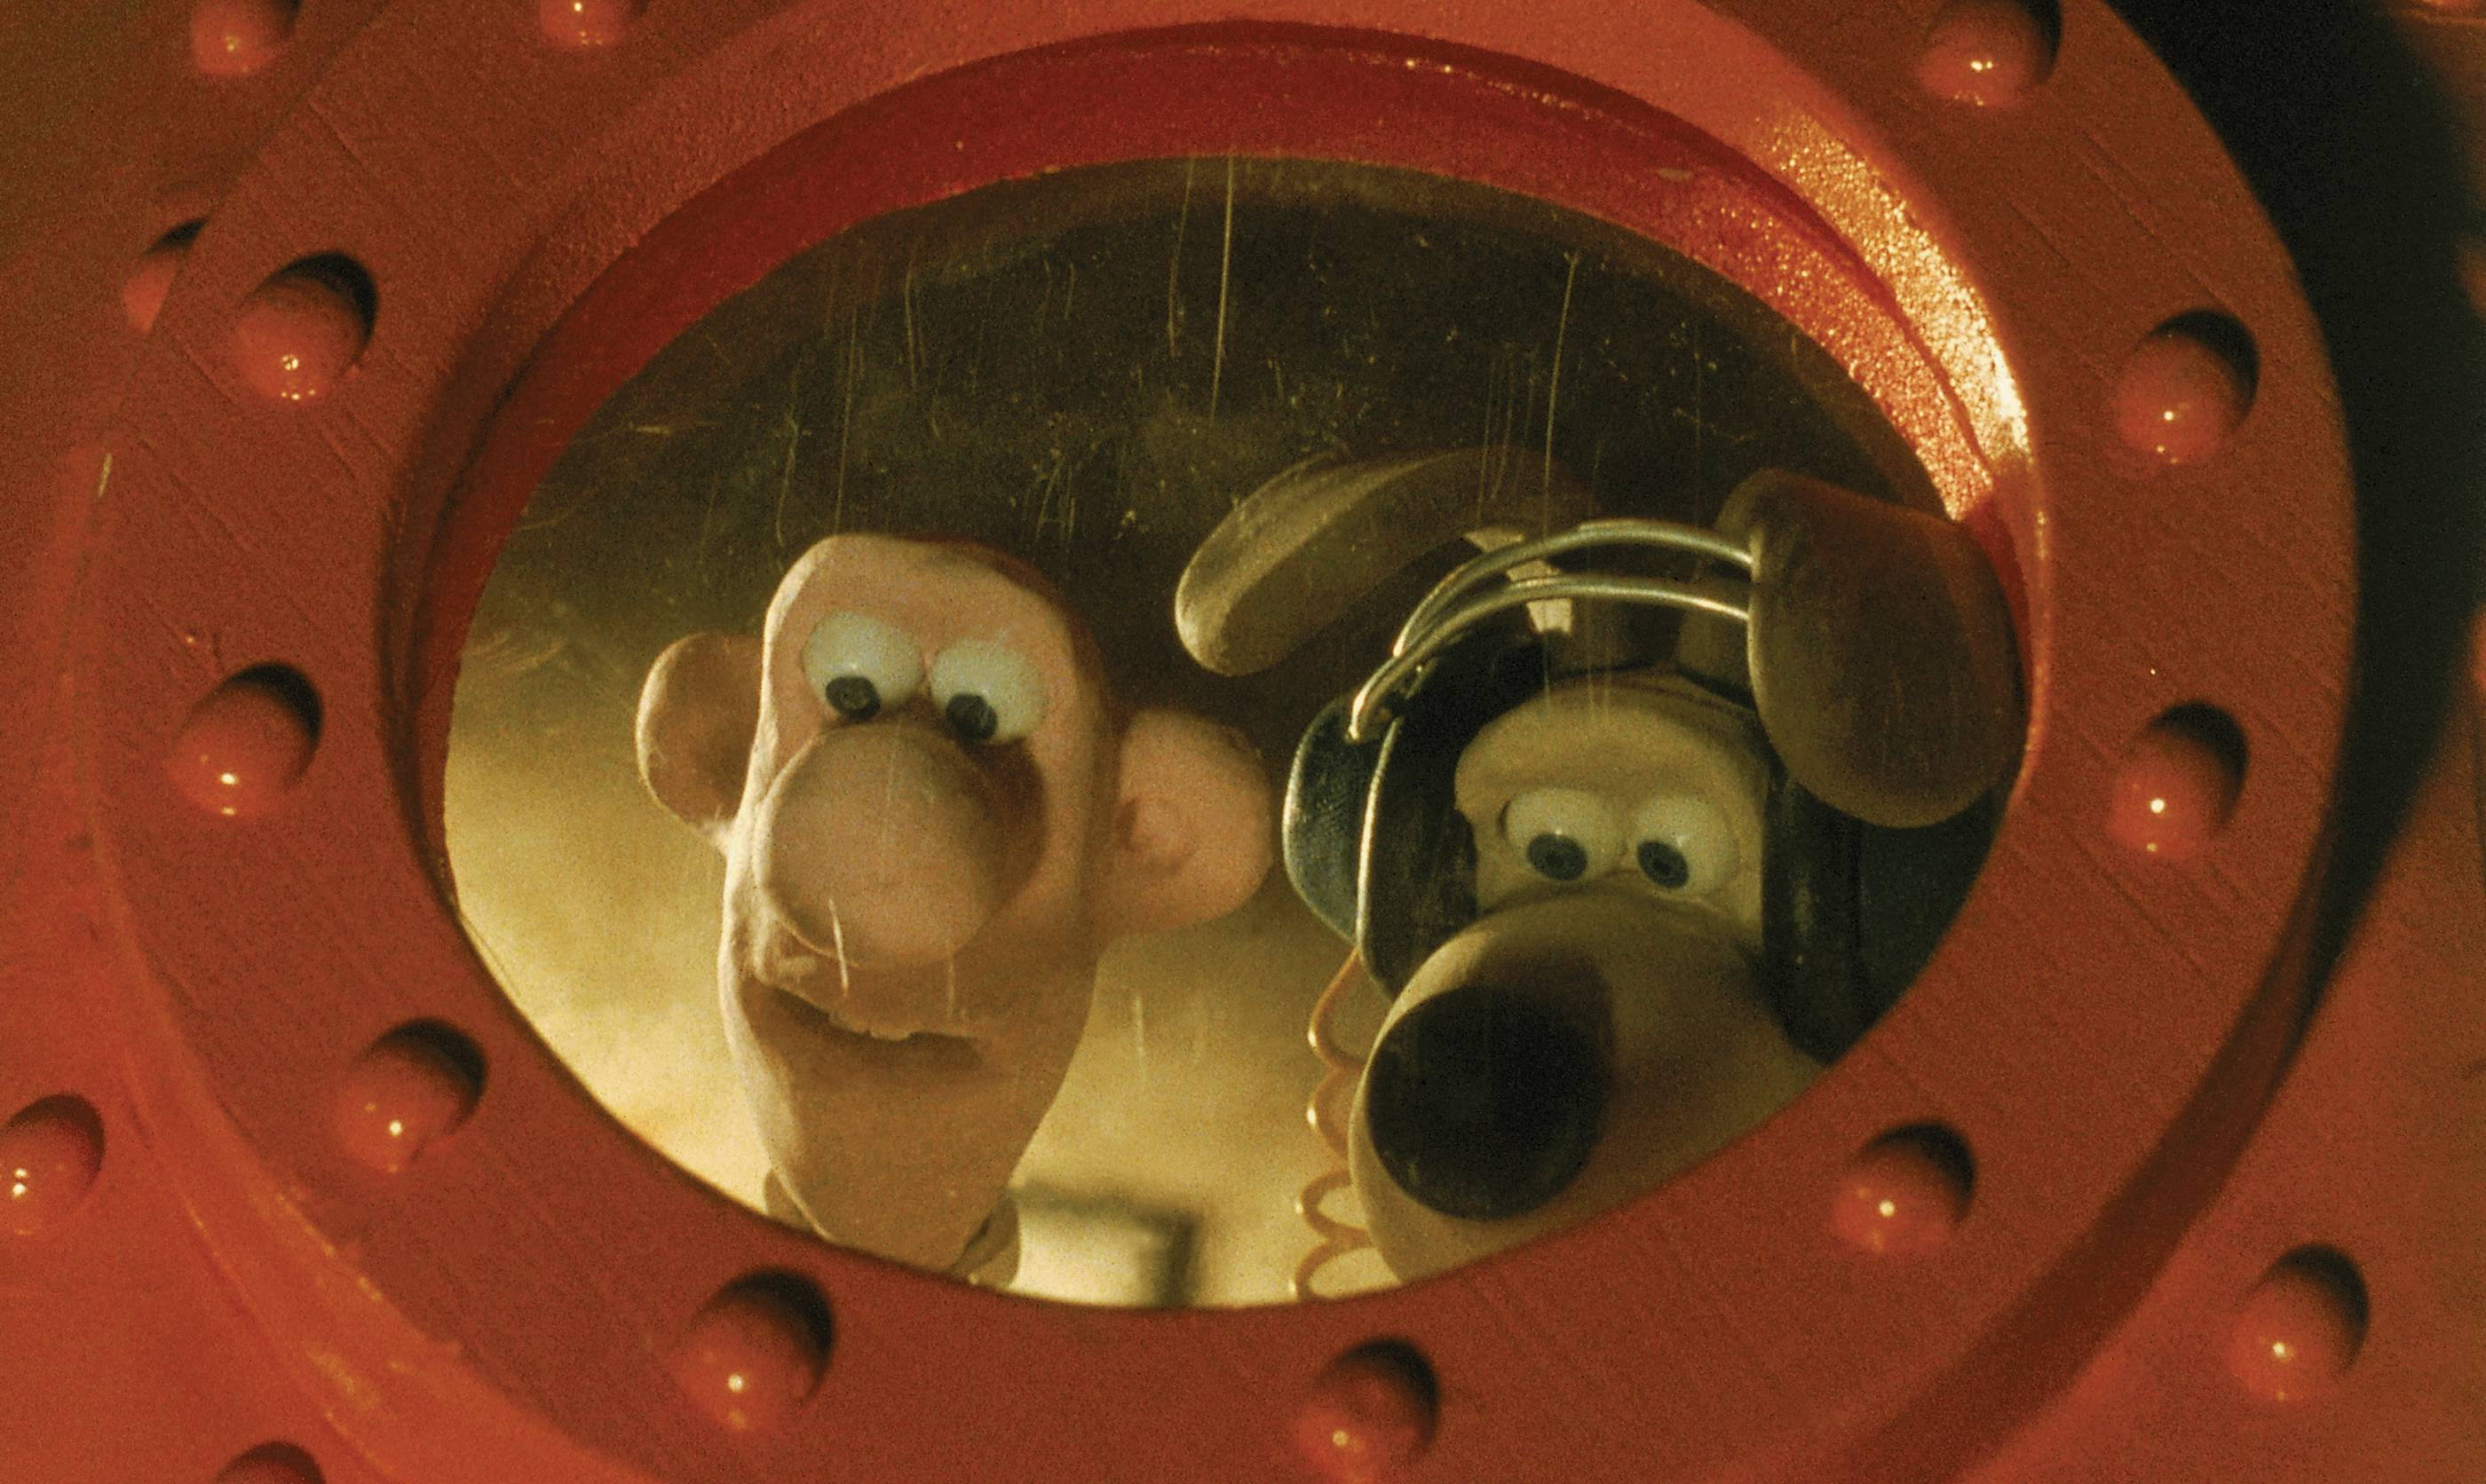 image of wallace and gromit (gromit wearing headphones) peering outside of a circular red spaceship window